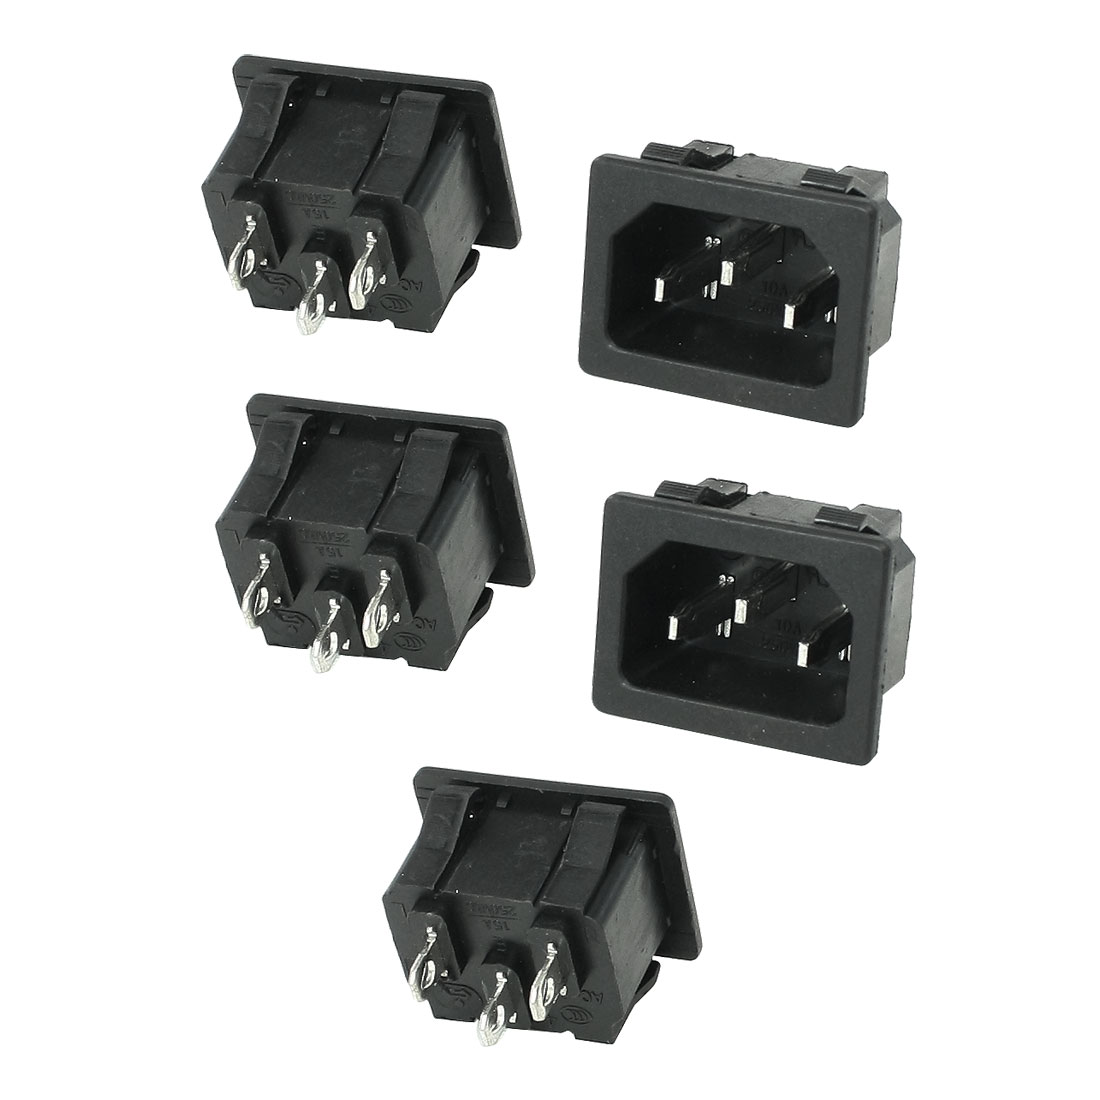 5 Pcs Panel Mounting IEC 60320 Male Power Supply Connector 15A AC 250V